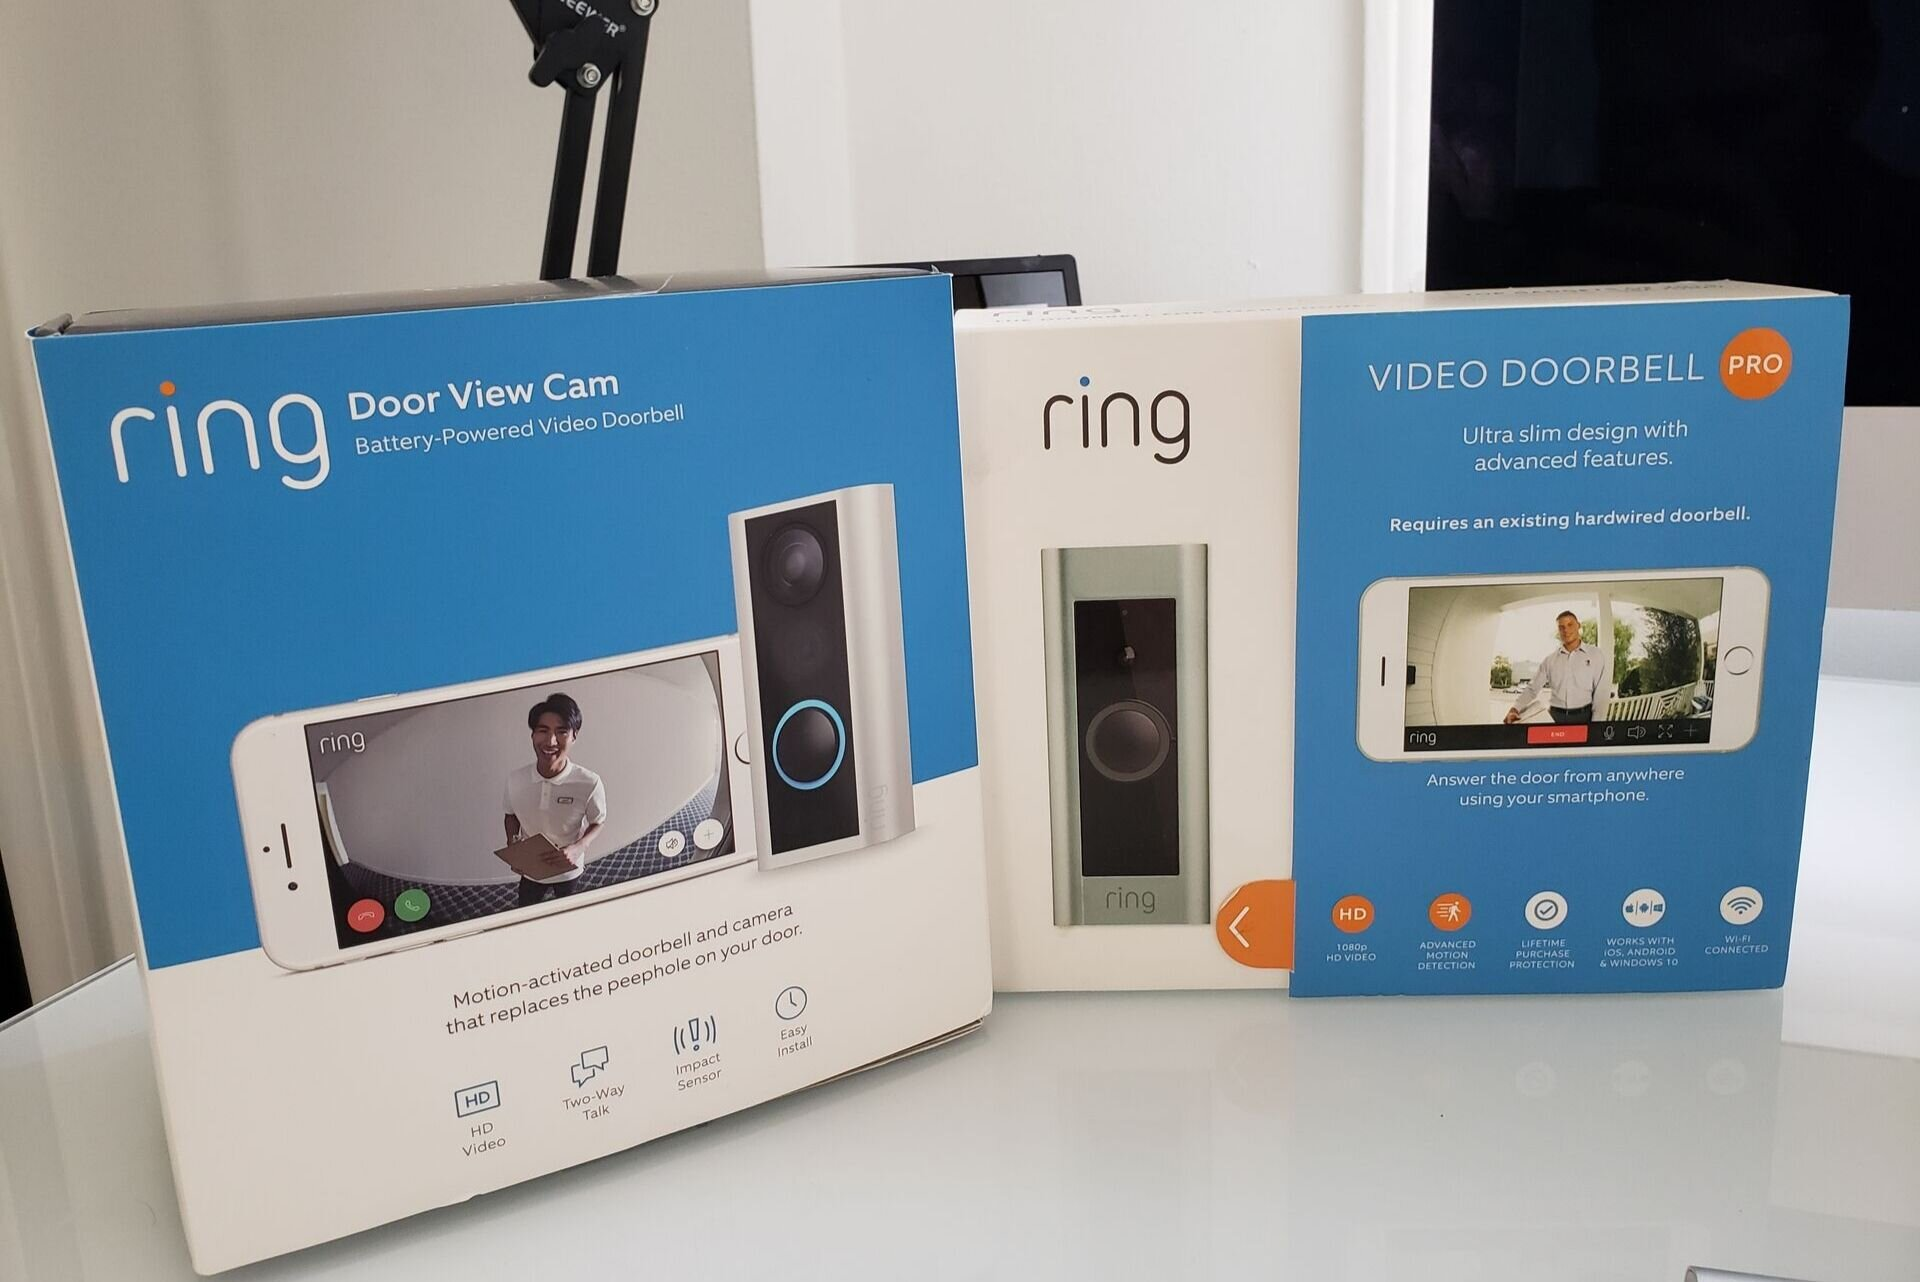 Ring Pro Doorbell  & Ring Door View Cam Shown. The Ring Door View cam is designed for use in doors with peepholes and can be installed in the existing peep hole. The Door View Cam is battery powered and wireless.